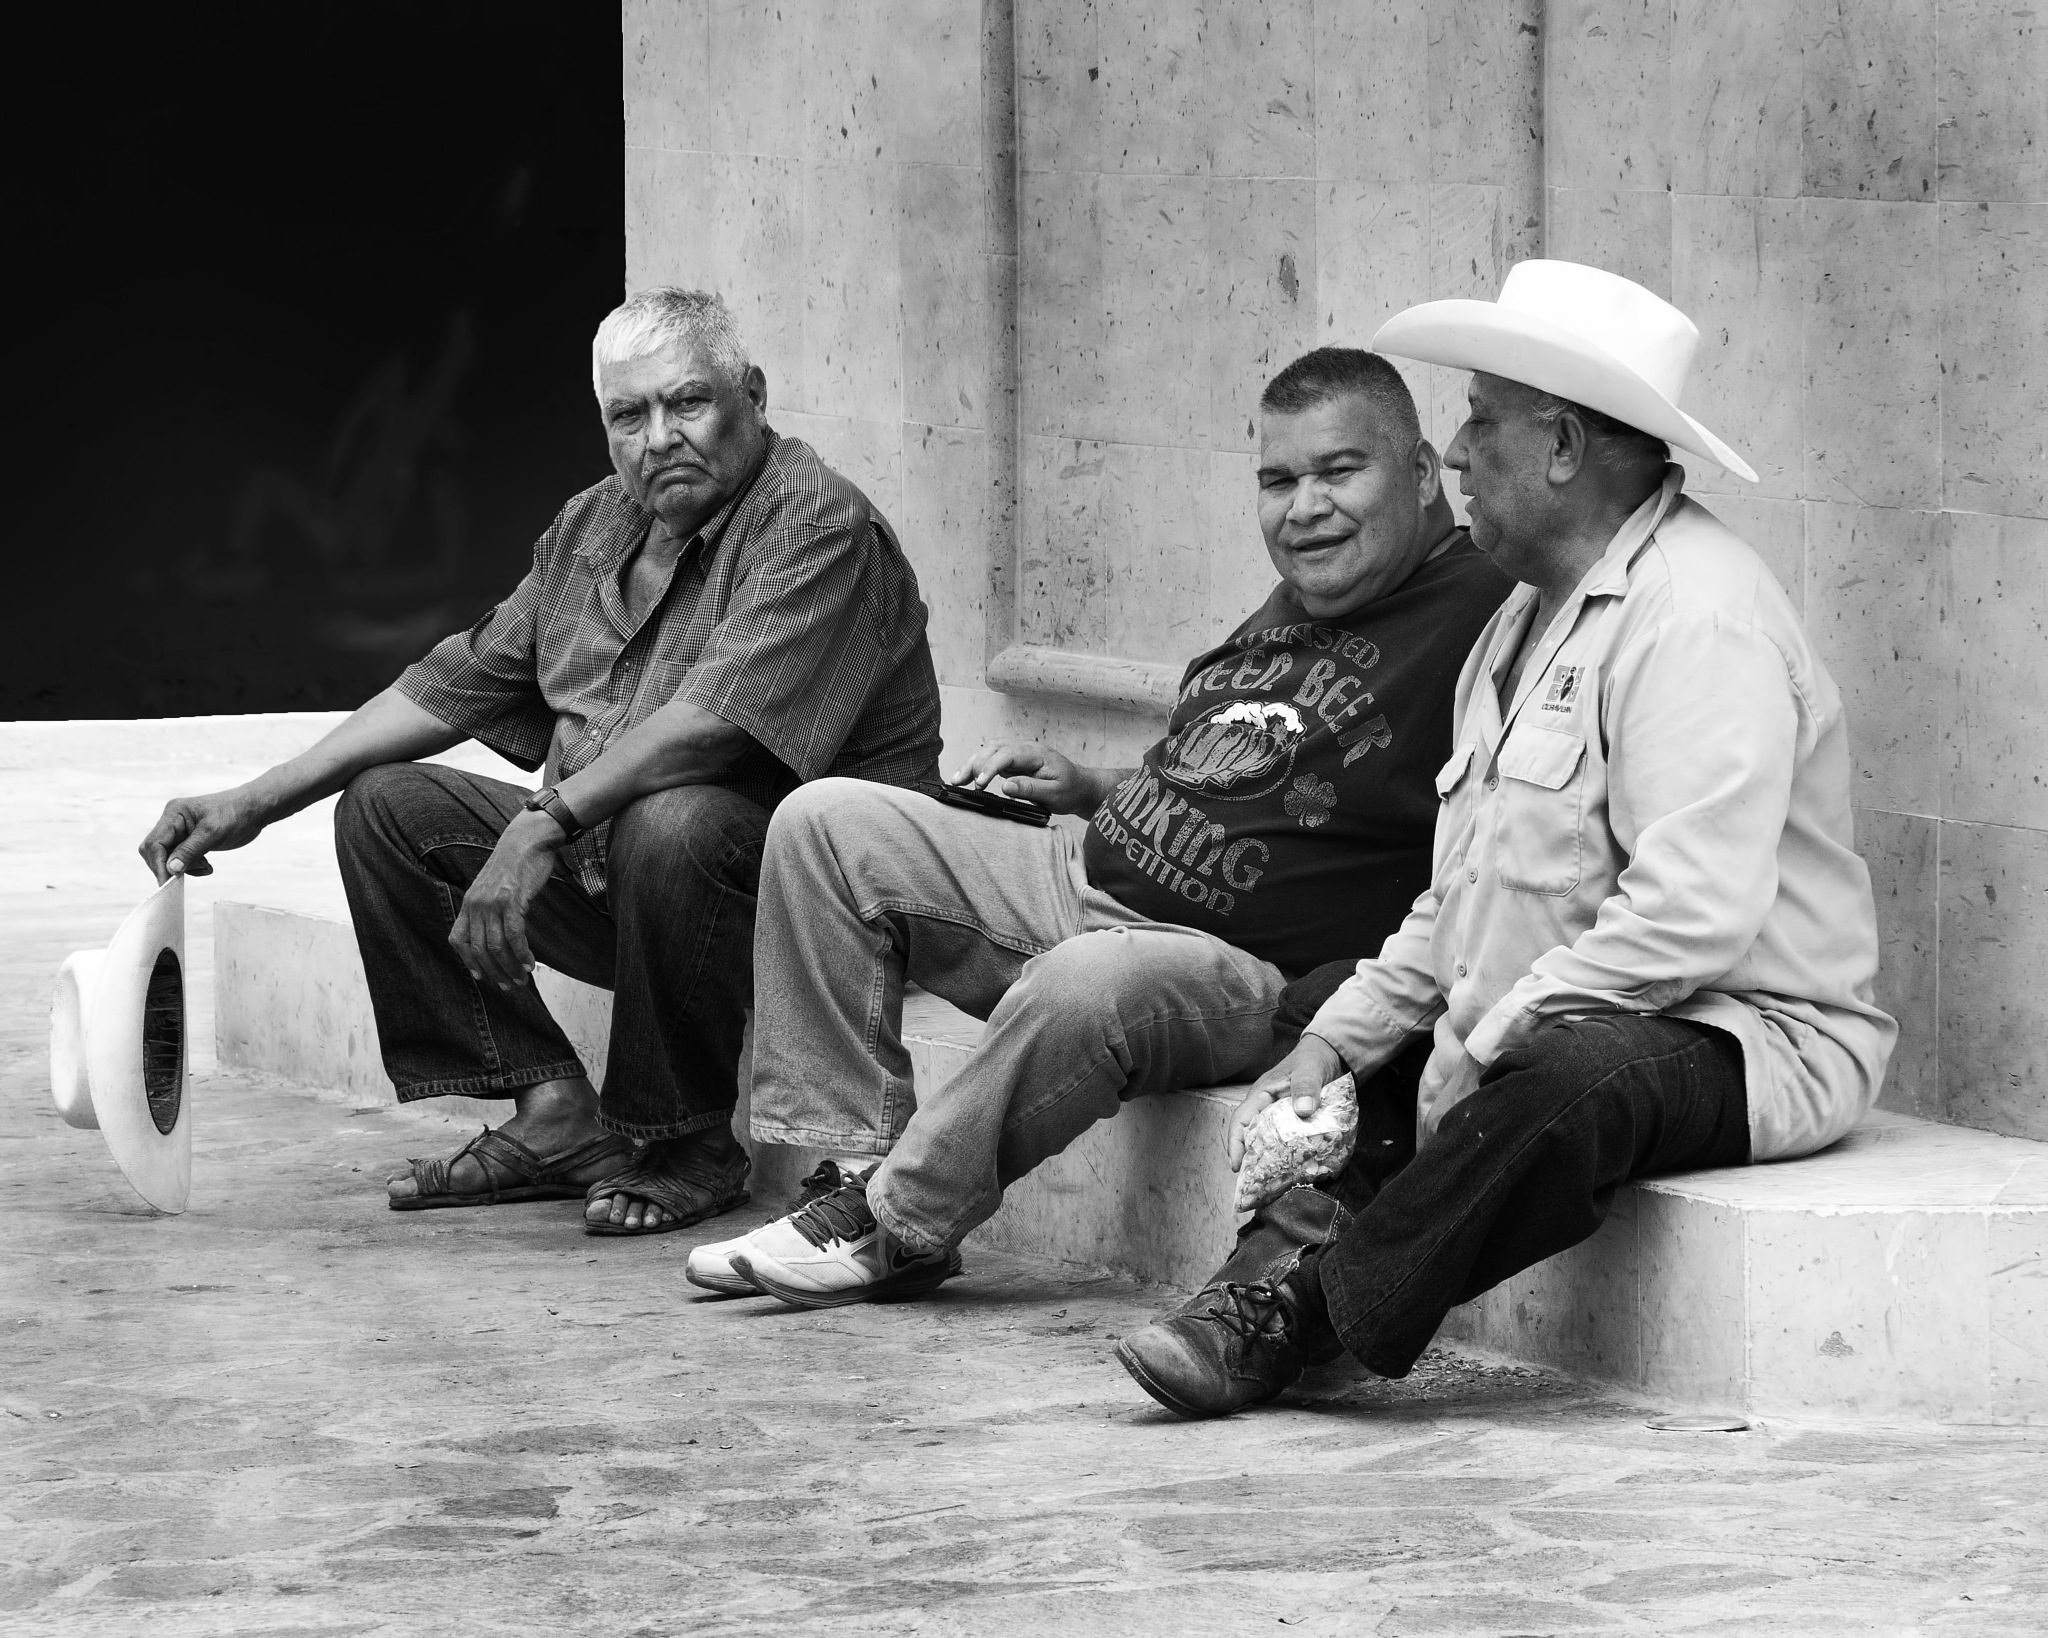 Amigos on the Stoop by Bobjb